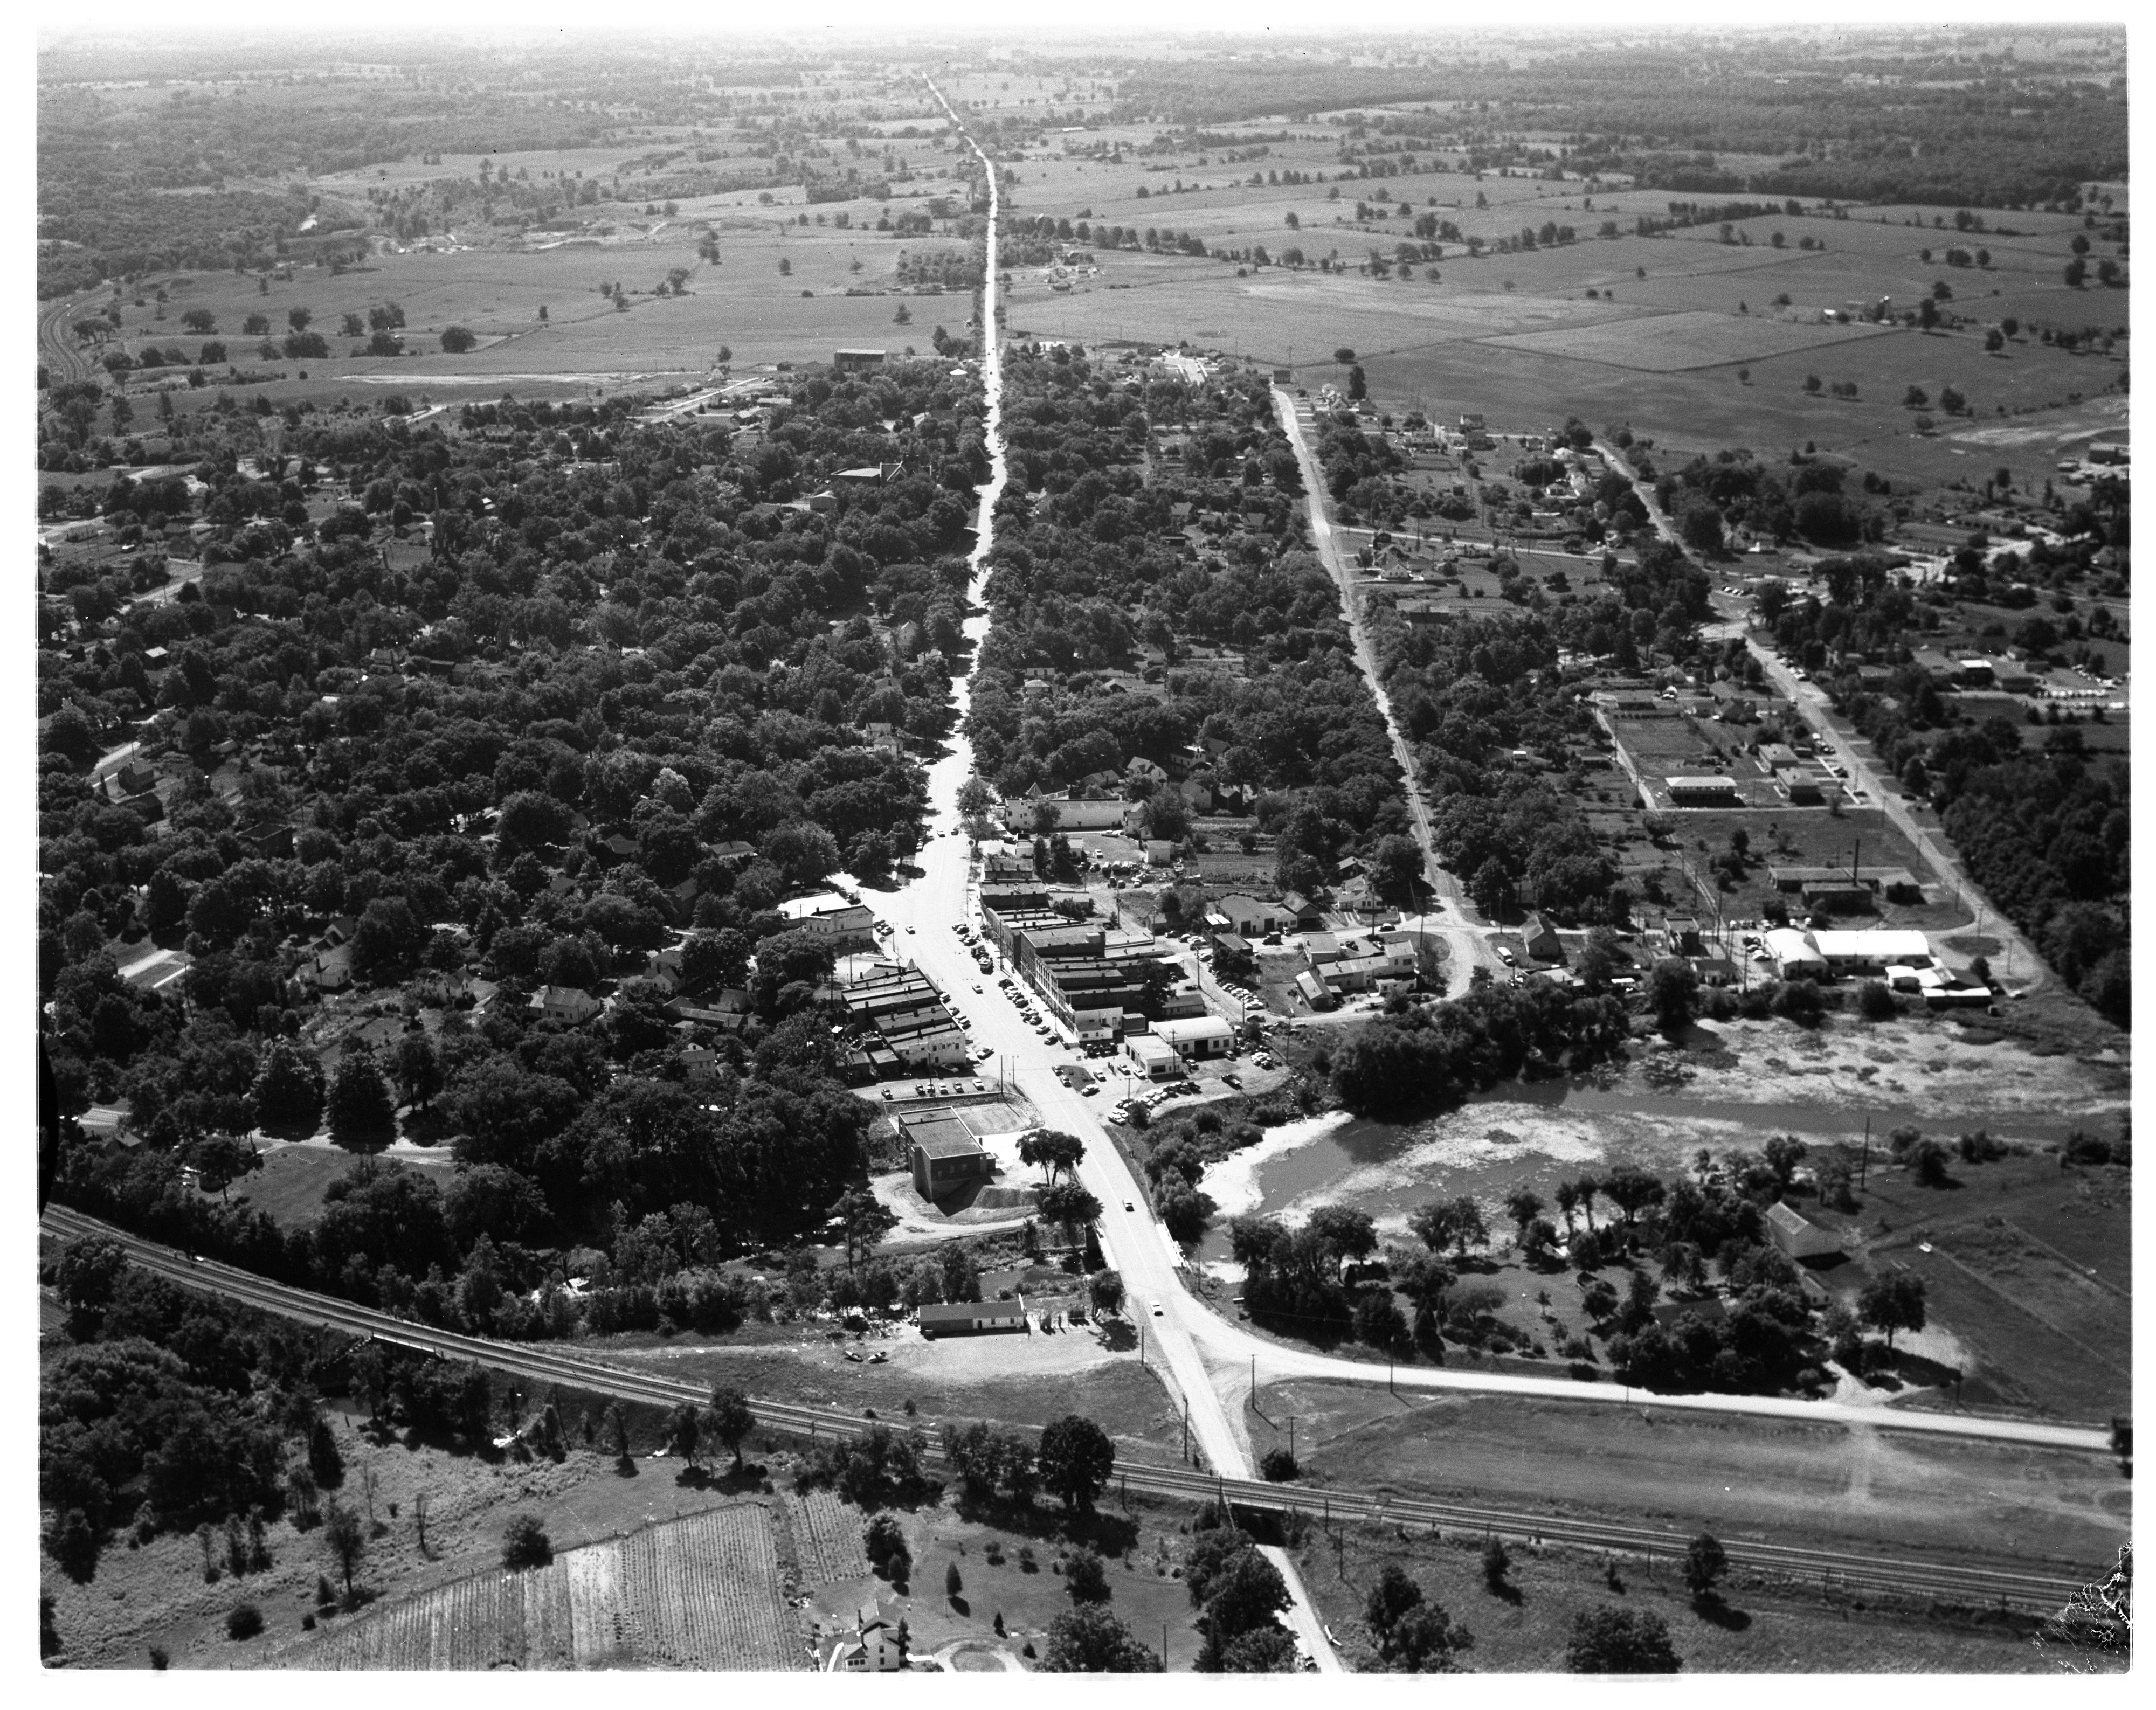 Aerial Photograph of Dexter, August 1956 image